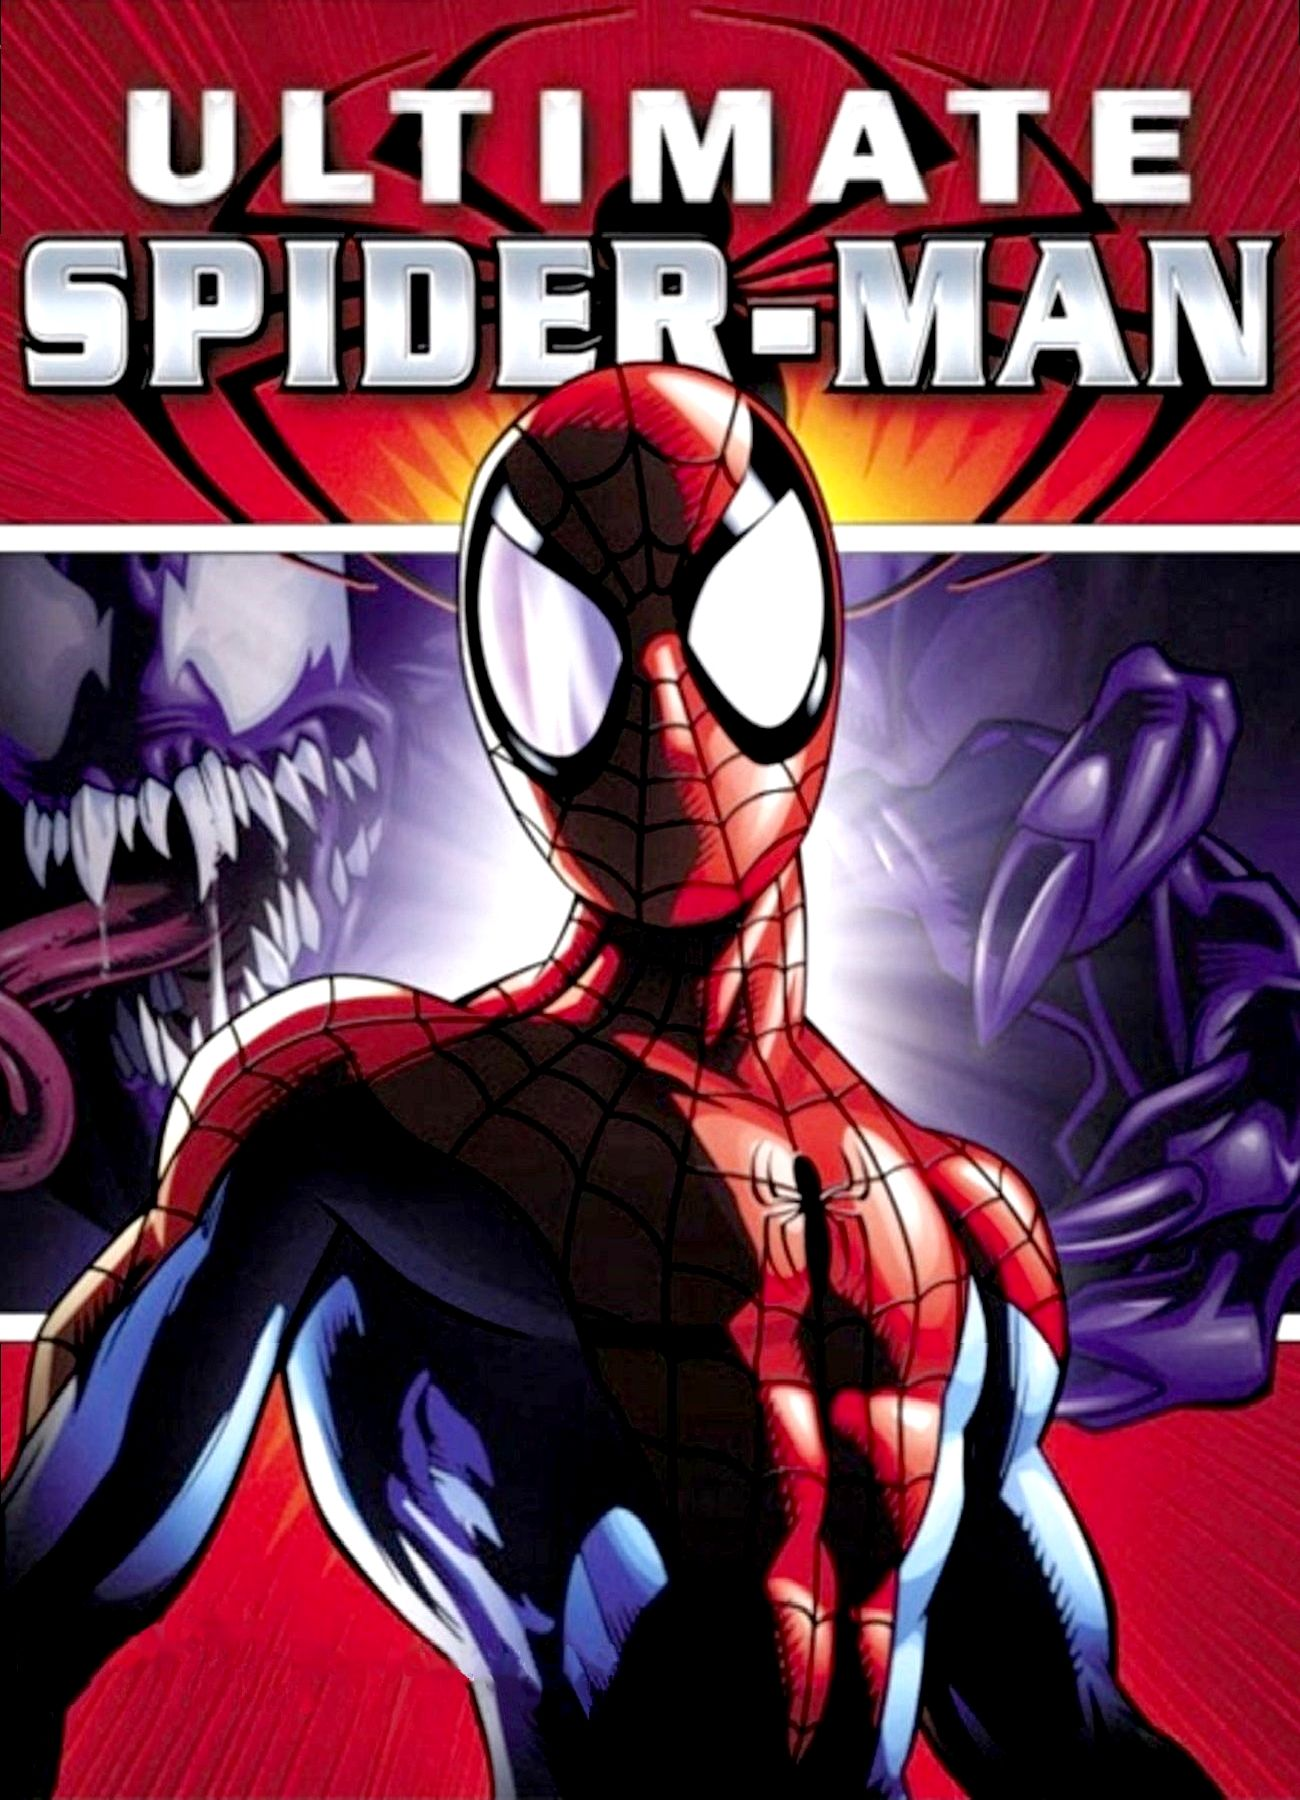 Файлы Ultimate Spider-Man - патч, демо, demo, моды, дополнение